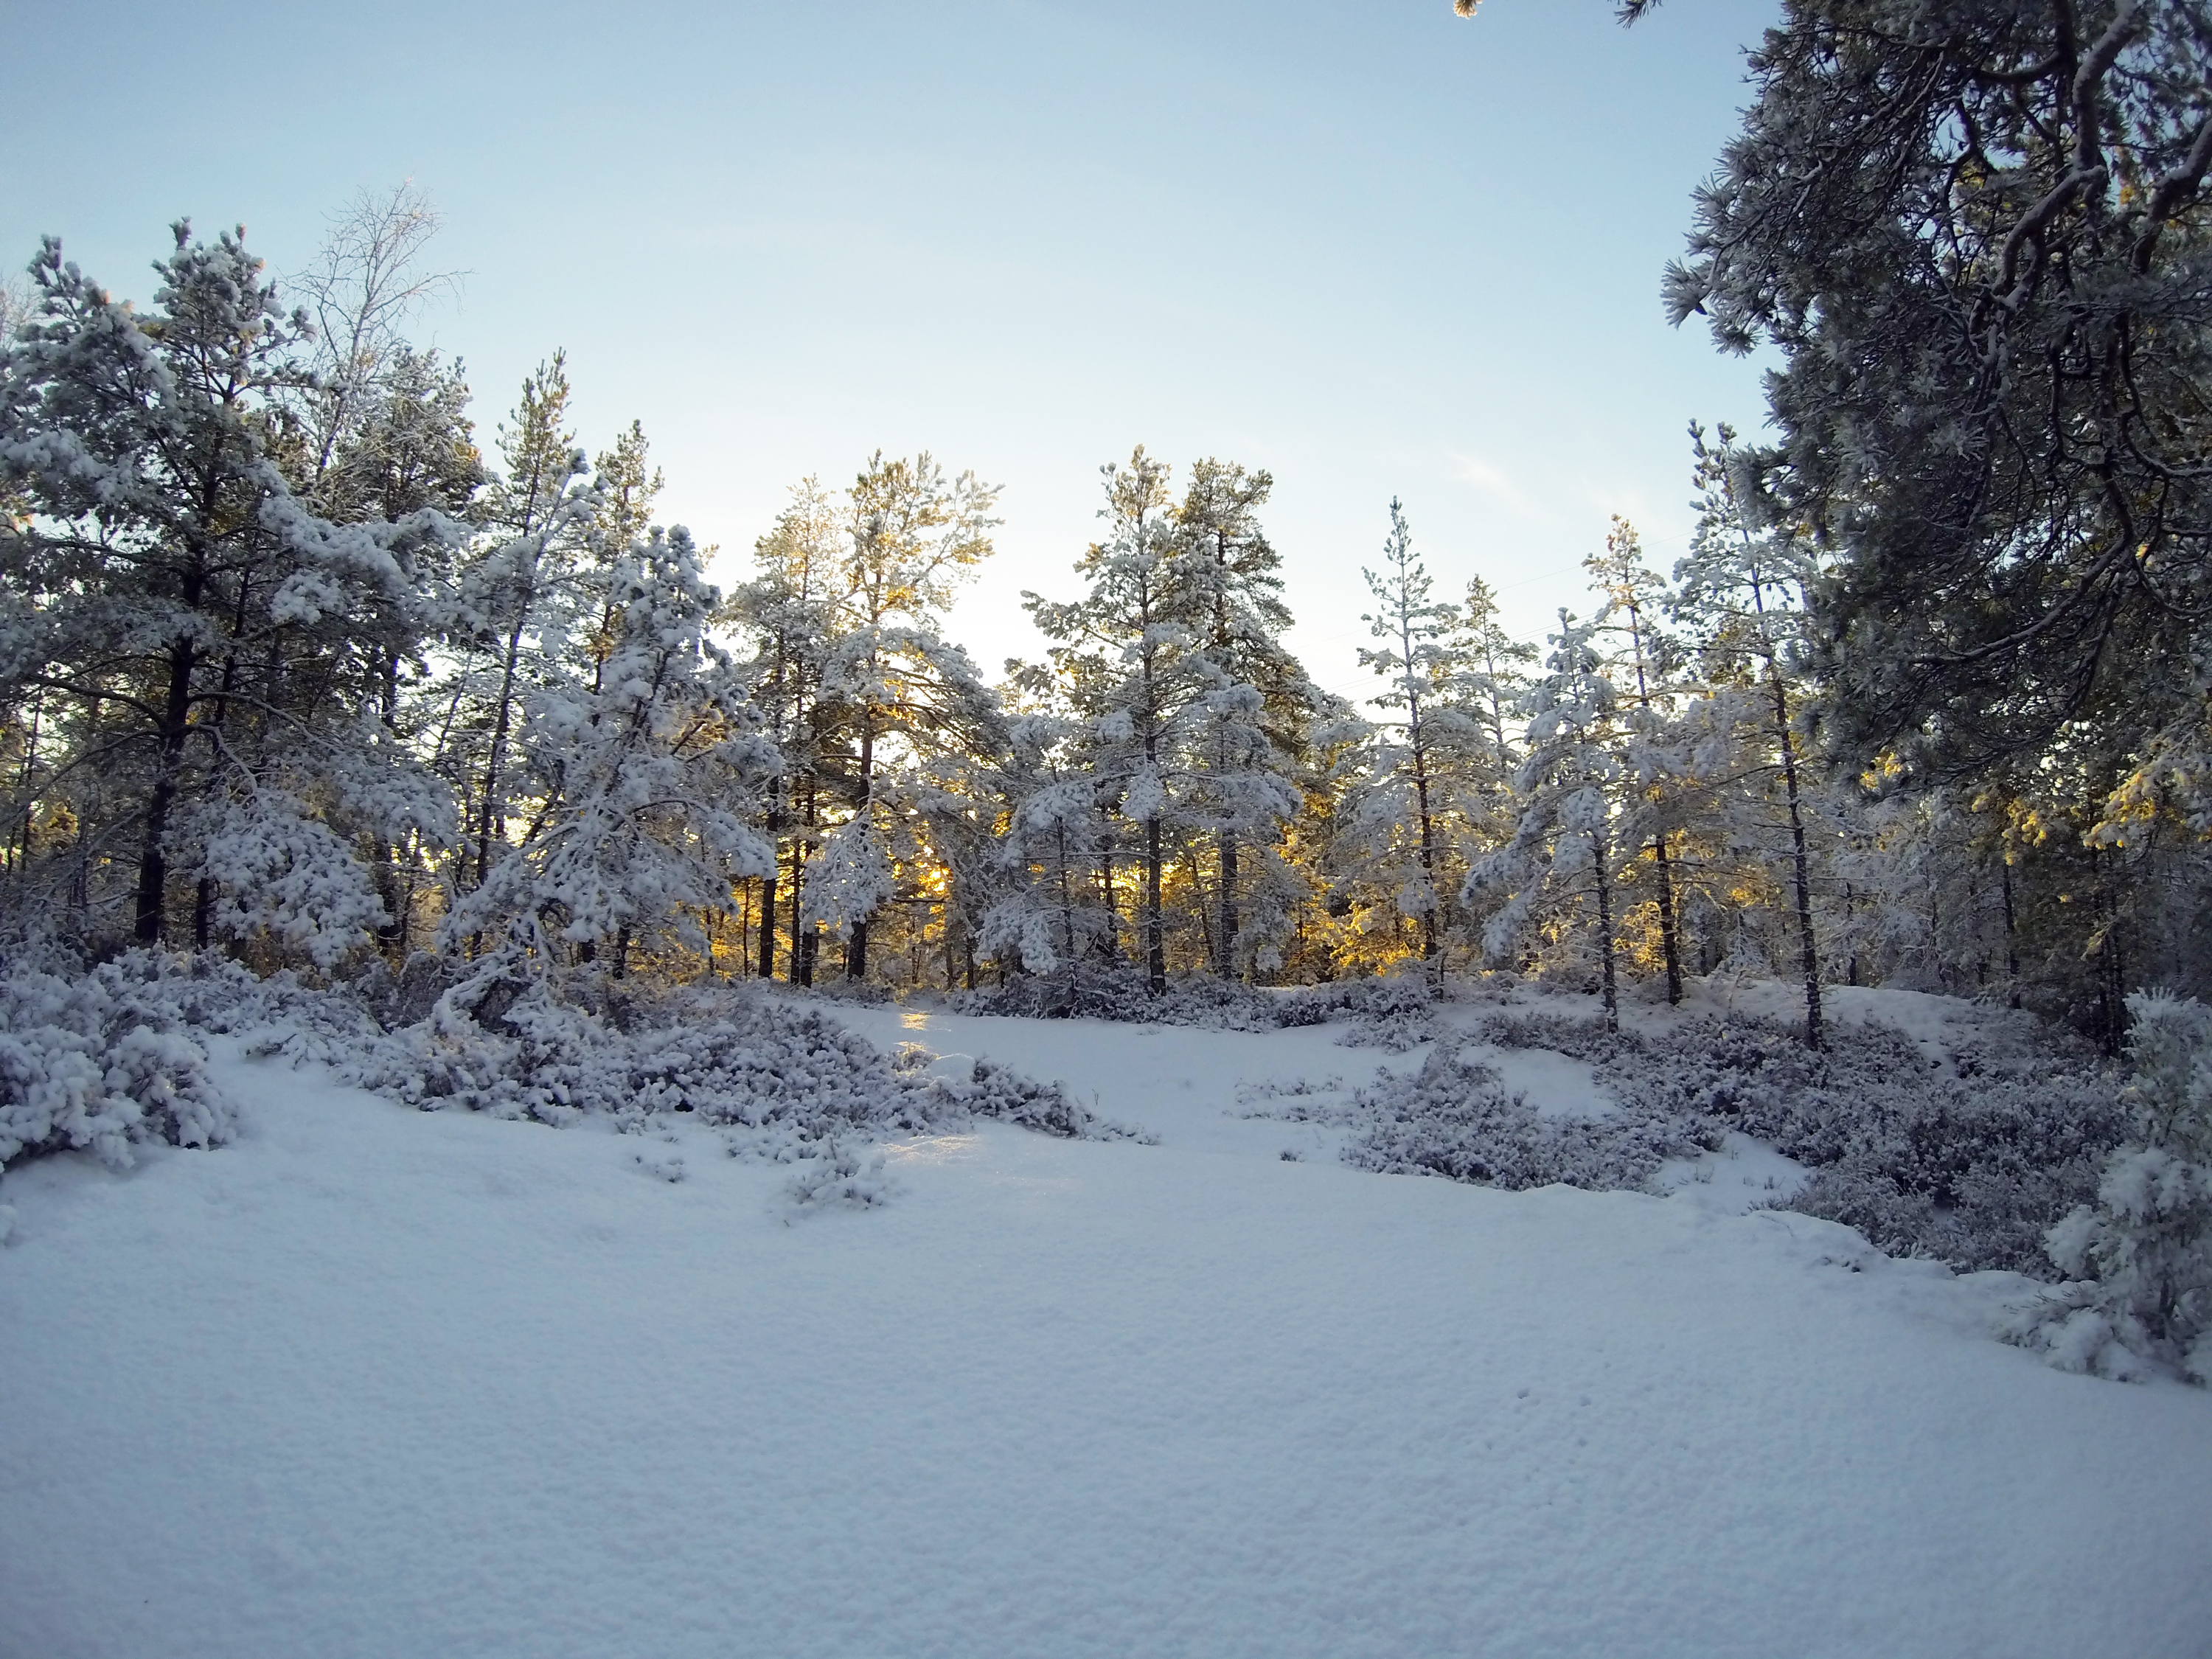 When Snow Has Covered The Forest | Study in Sweden: the ...